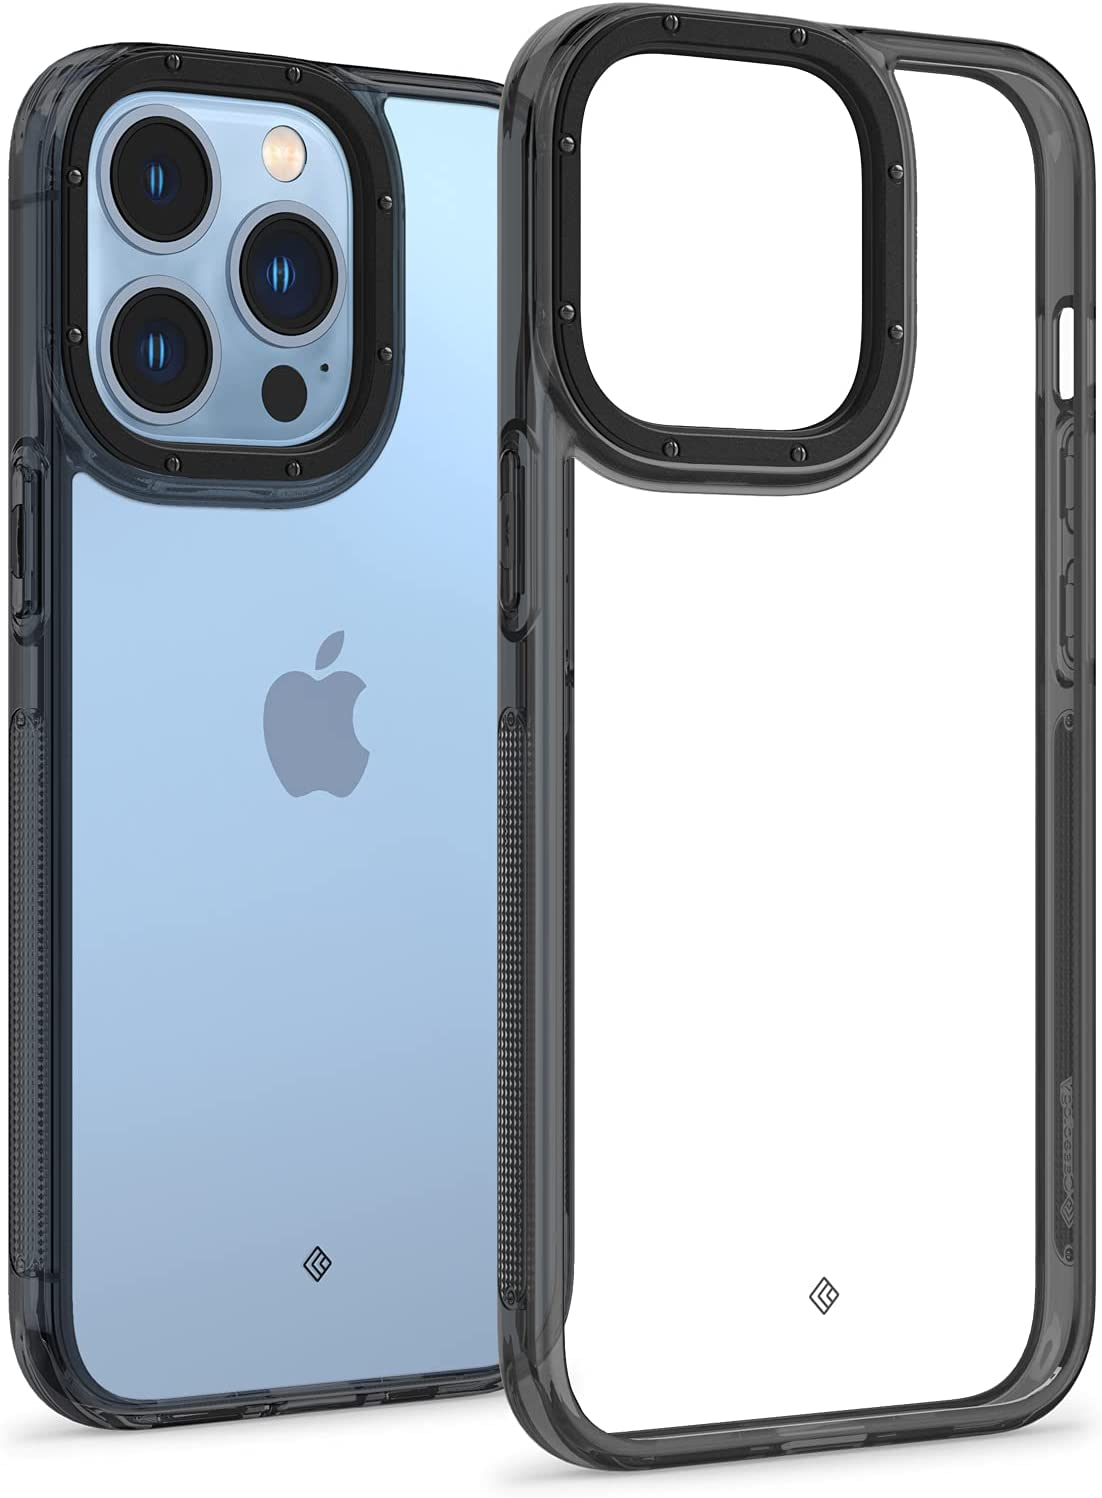 Caseology Skyfall Clear Case Compatible with iPhone 13 Pro Case (2021) - Royal Black